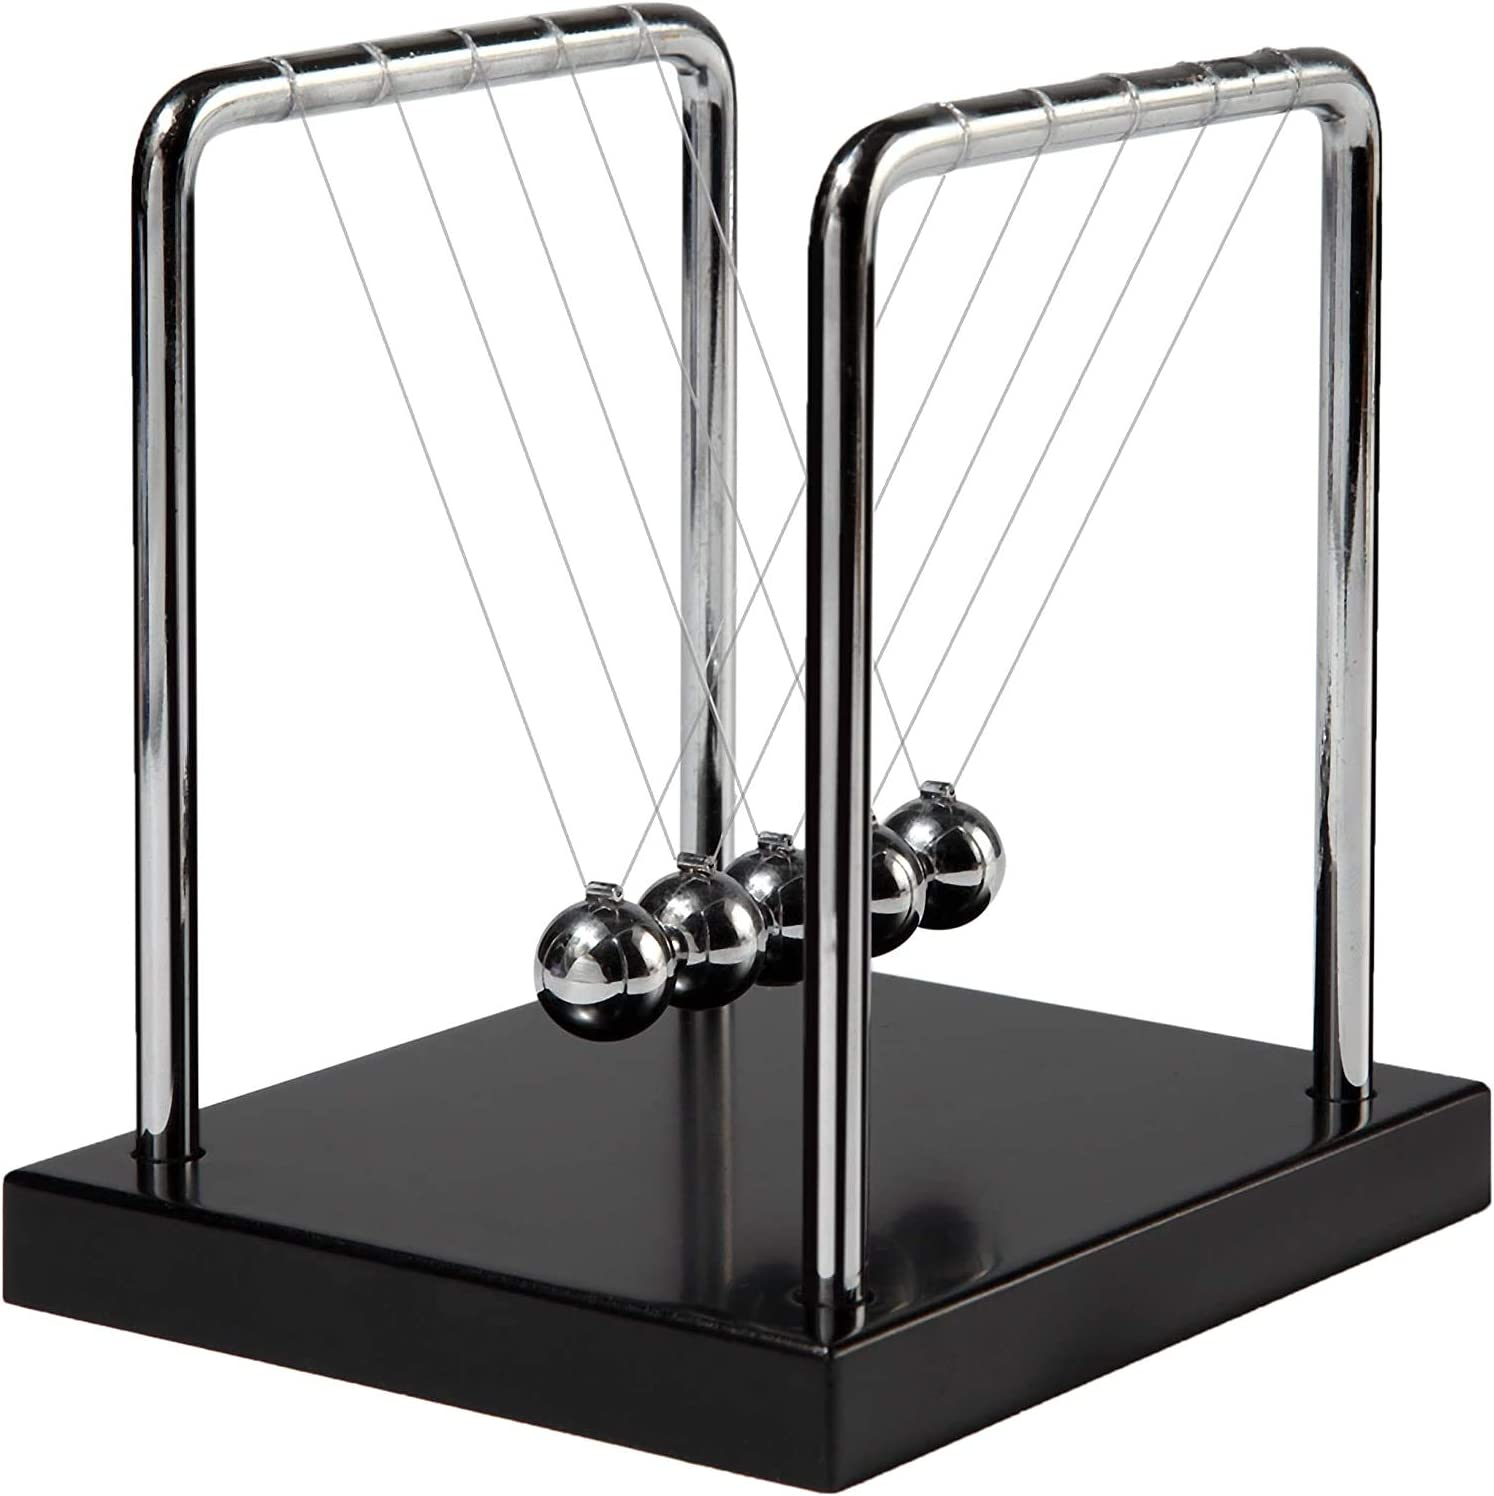 Newtons Cradle Balance Balls with Black Wooden Base Fun Science Physics Learning Desk Toys Fun Gadget 5 Pendulum Balls for Office and Home Decoration-Black